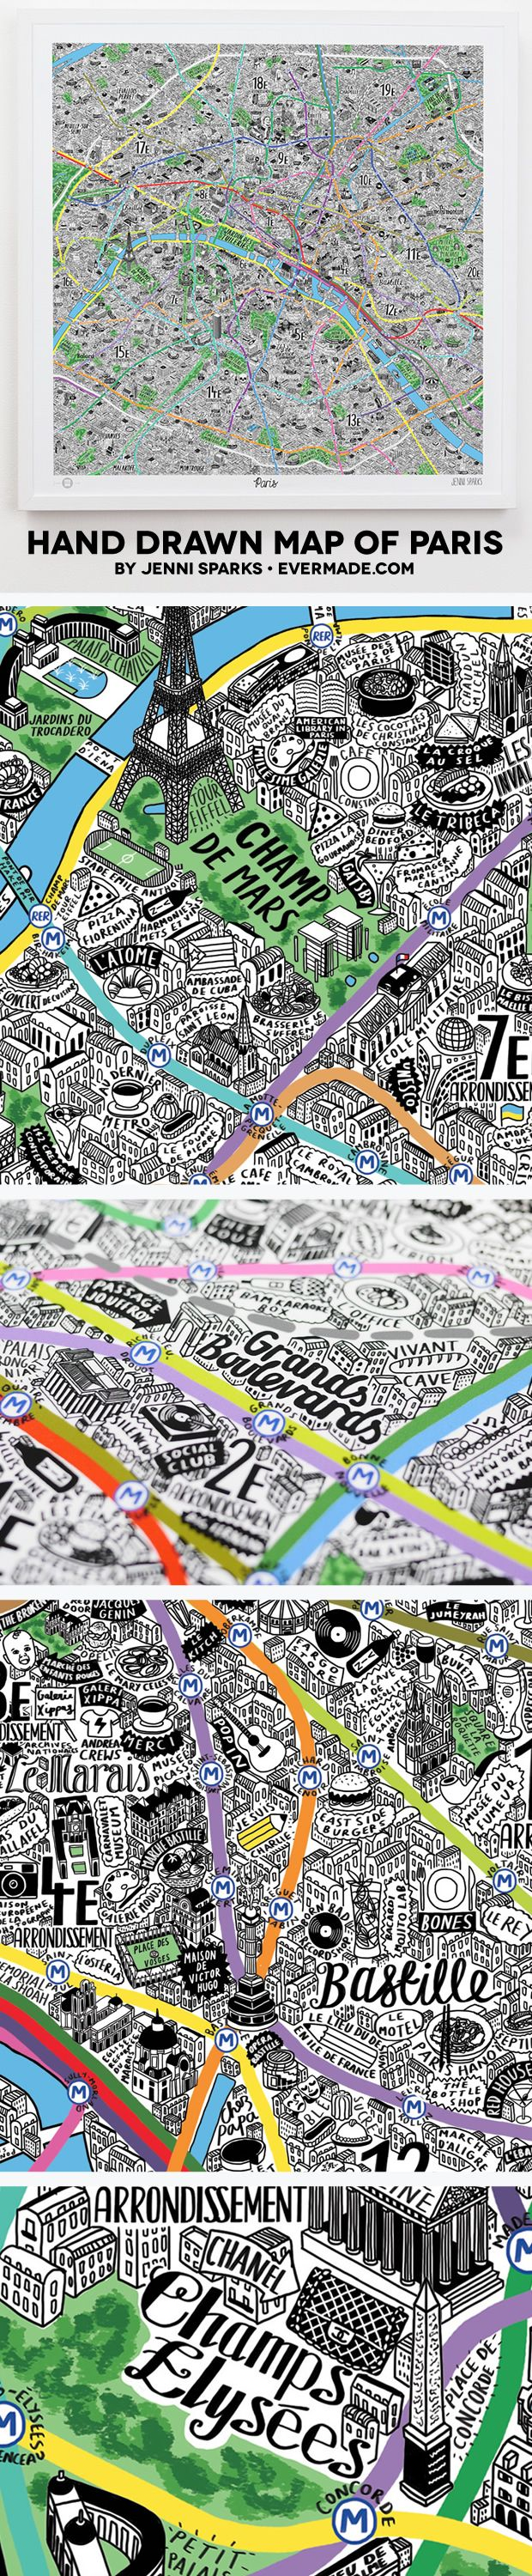 Paris Map Art Print from Evermade.com #design #illustration